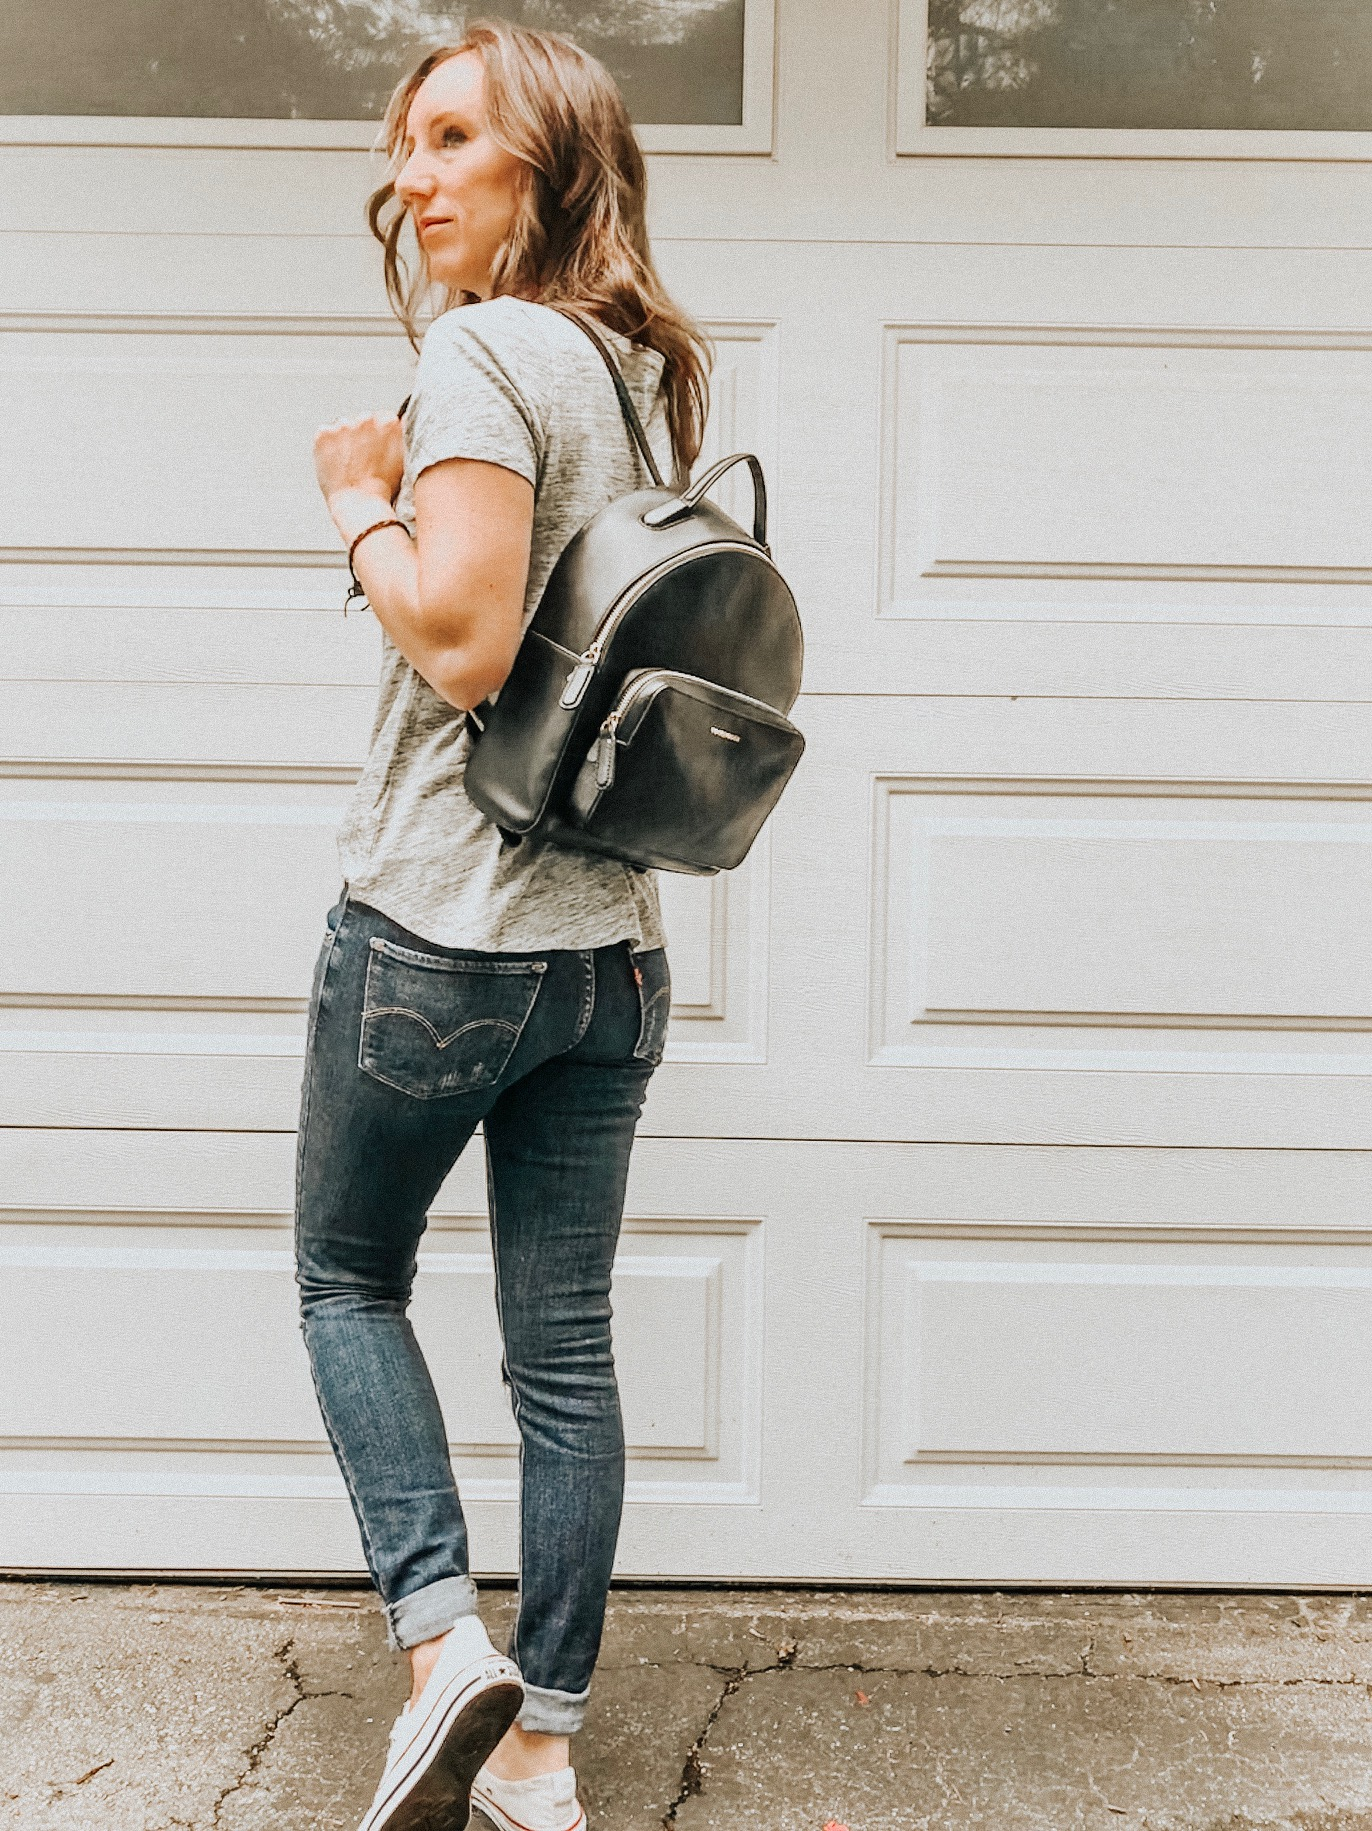 Fall Instagram Favorites | Daily Splendor Life and Style Blog | denim, tee, converse, backpack #casualstyle #casualoutfit #momstyle #everydayfashion #fallstyle #fallneutrals